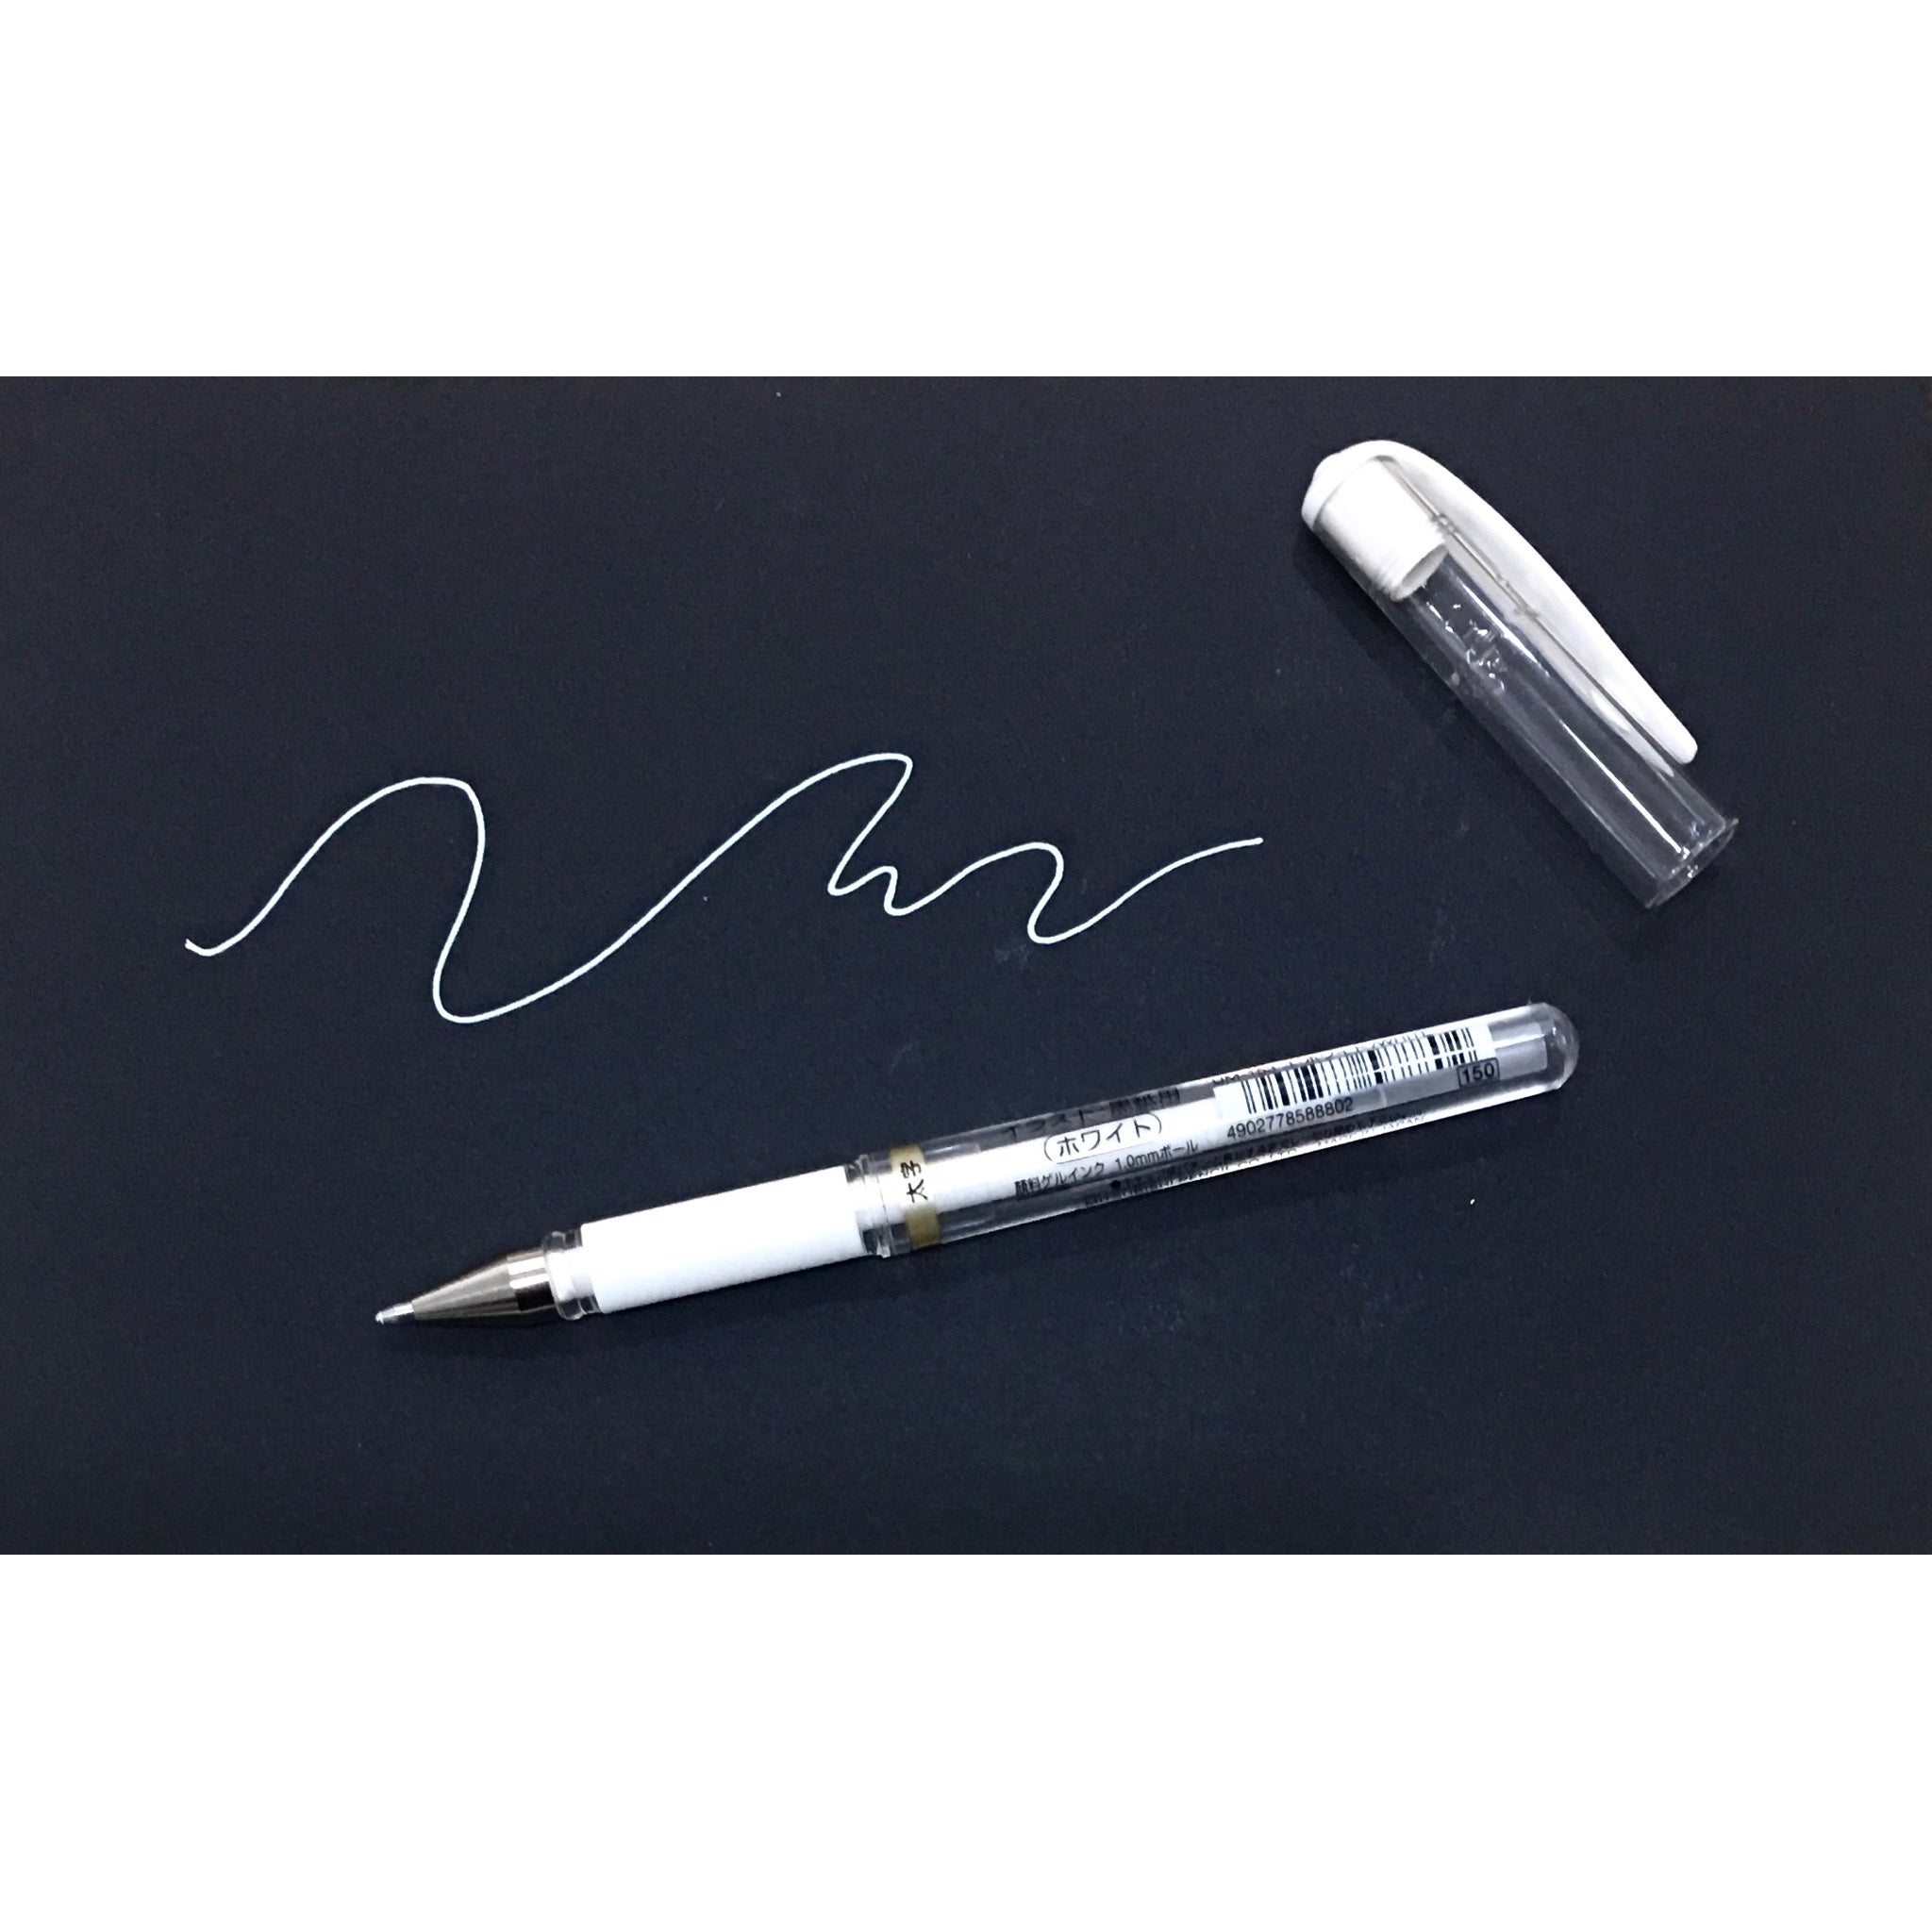 Uni-Ball Signo White Gel Impact Pen - Japanese Import - by Uni-Ball - K. A. Artist Shop